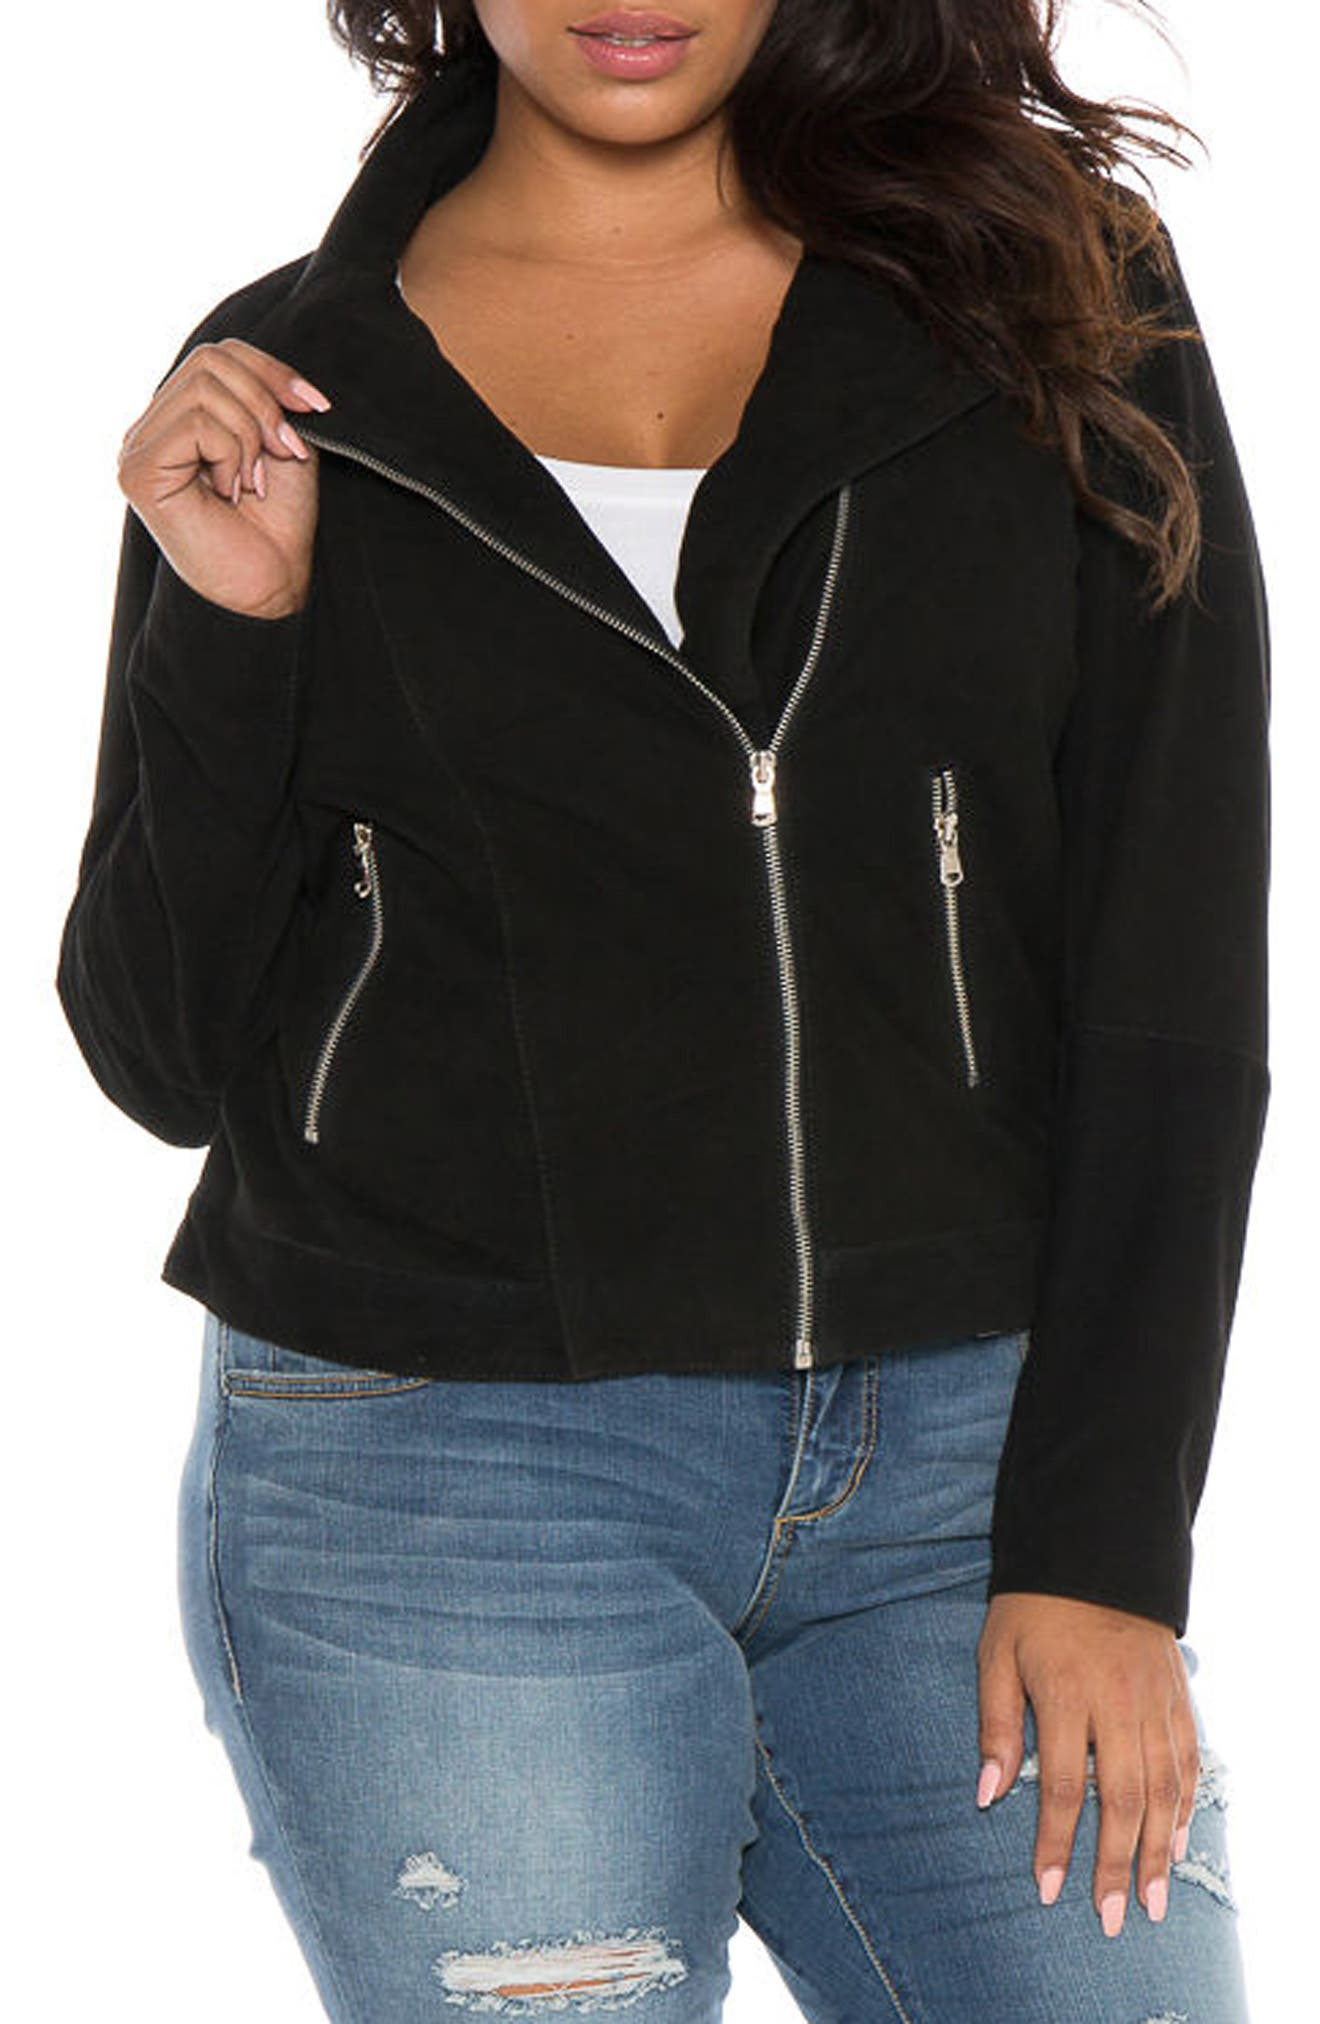 Main Image - SLINK Jeans Canyon Suede Jacket (Plus Size)